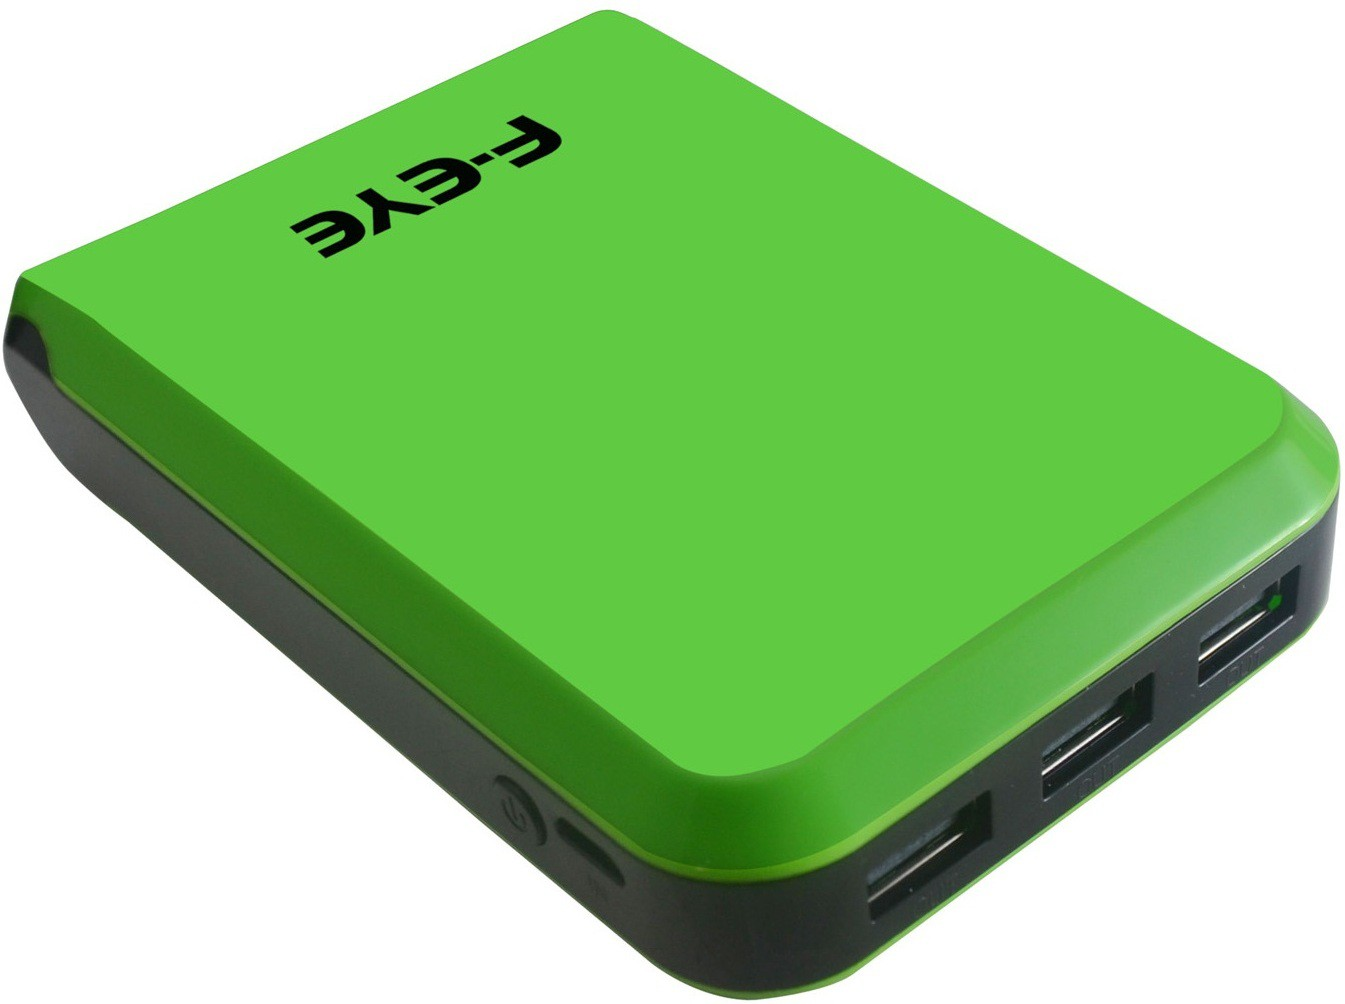 F-EYE High Capacity Power Bank with 3 USB Output Port for iOS and Android Devices 10400 mAh Power Bank(Green, Lithium-ion)